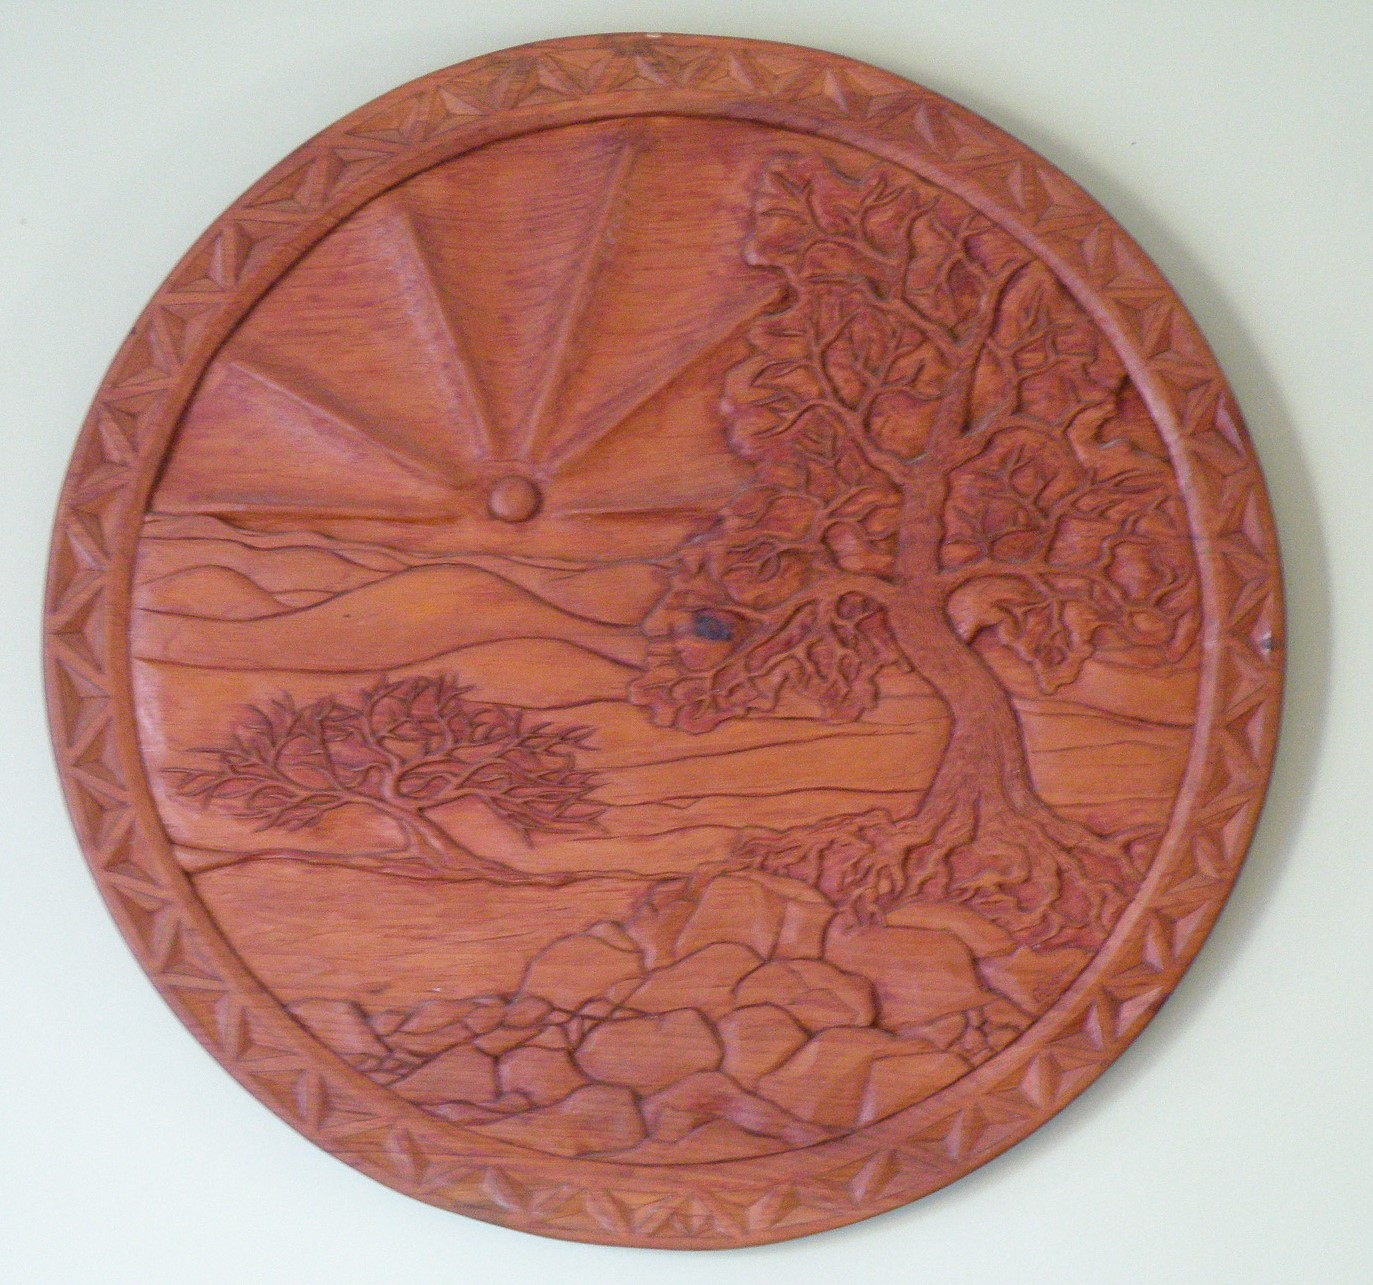 [Wood carving pine slab, about 27 inches in diameter]